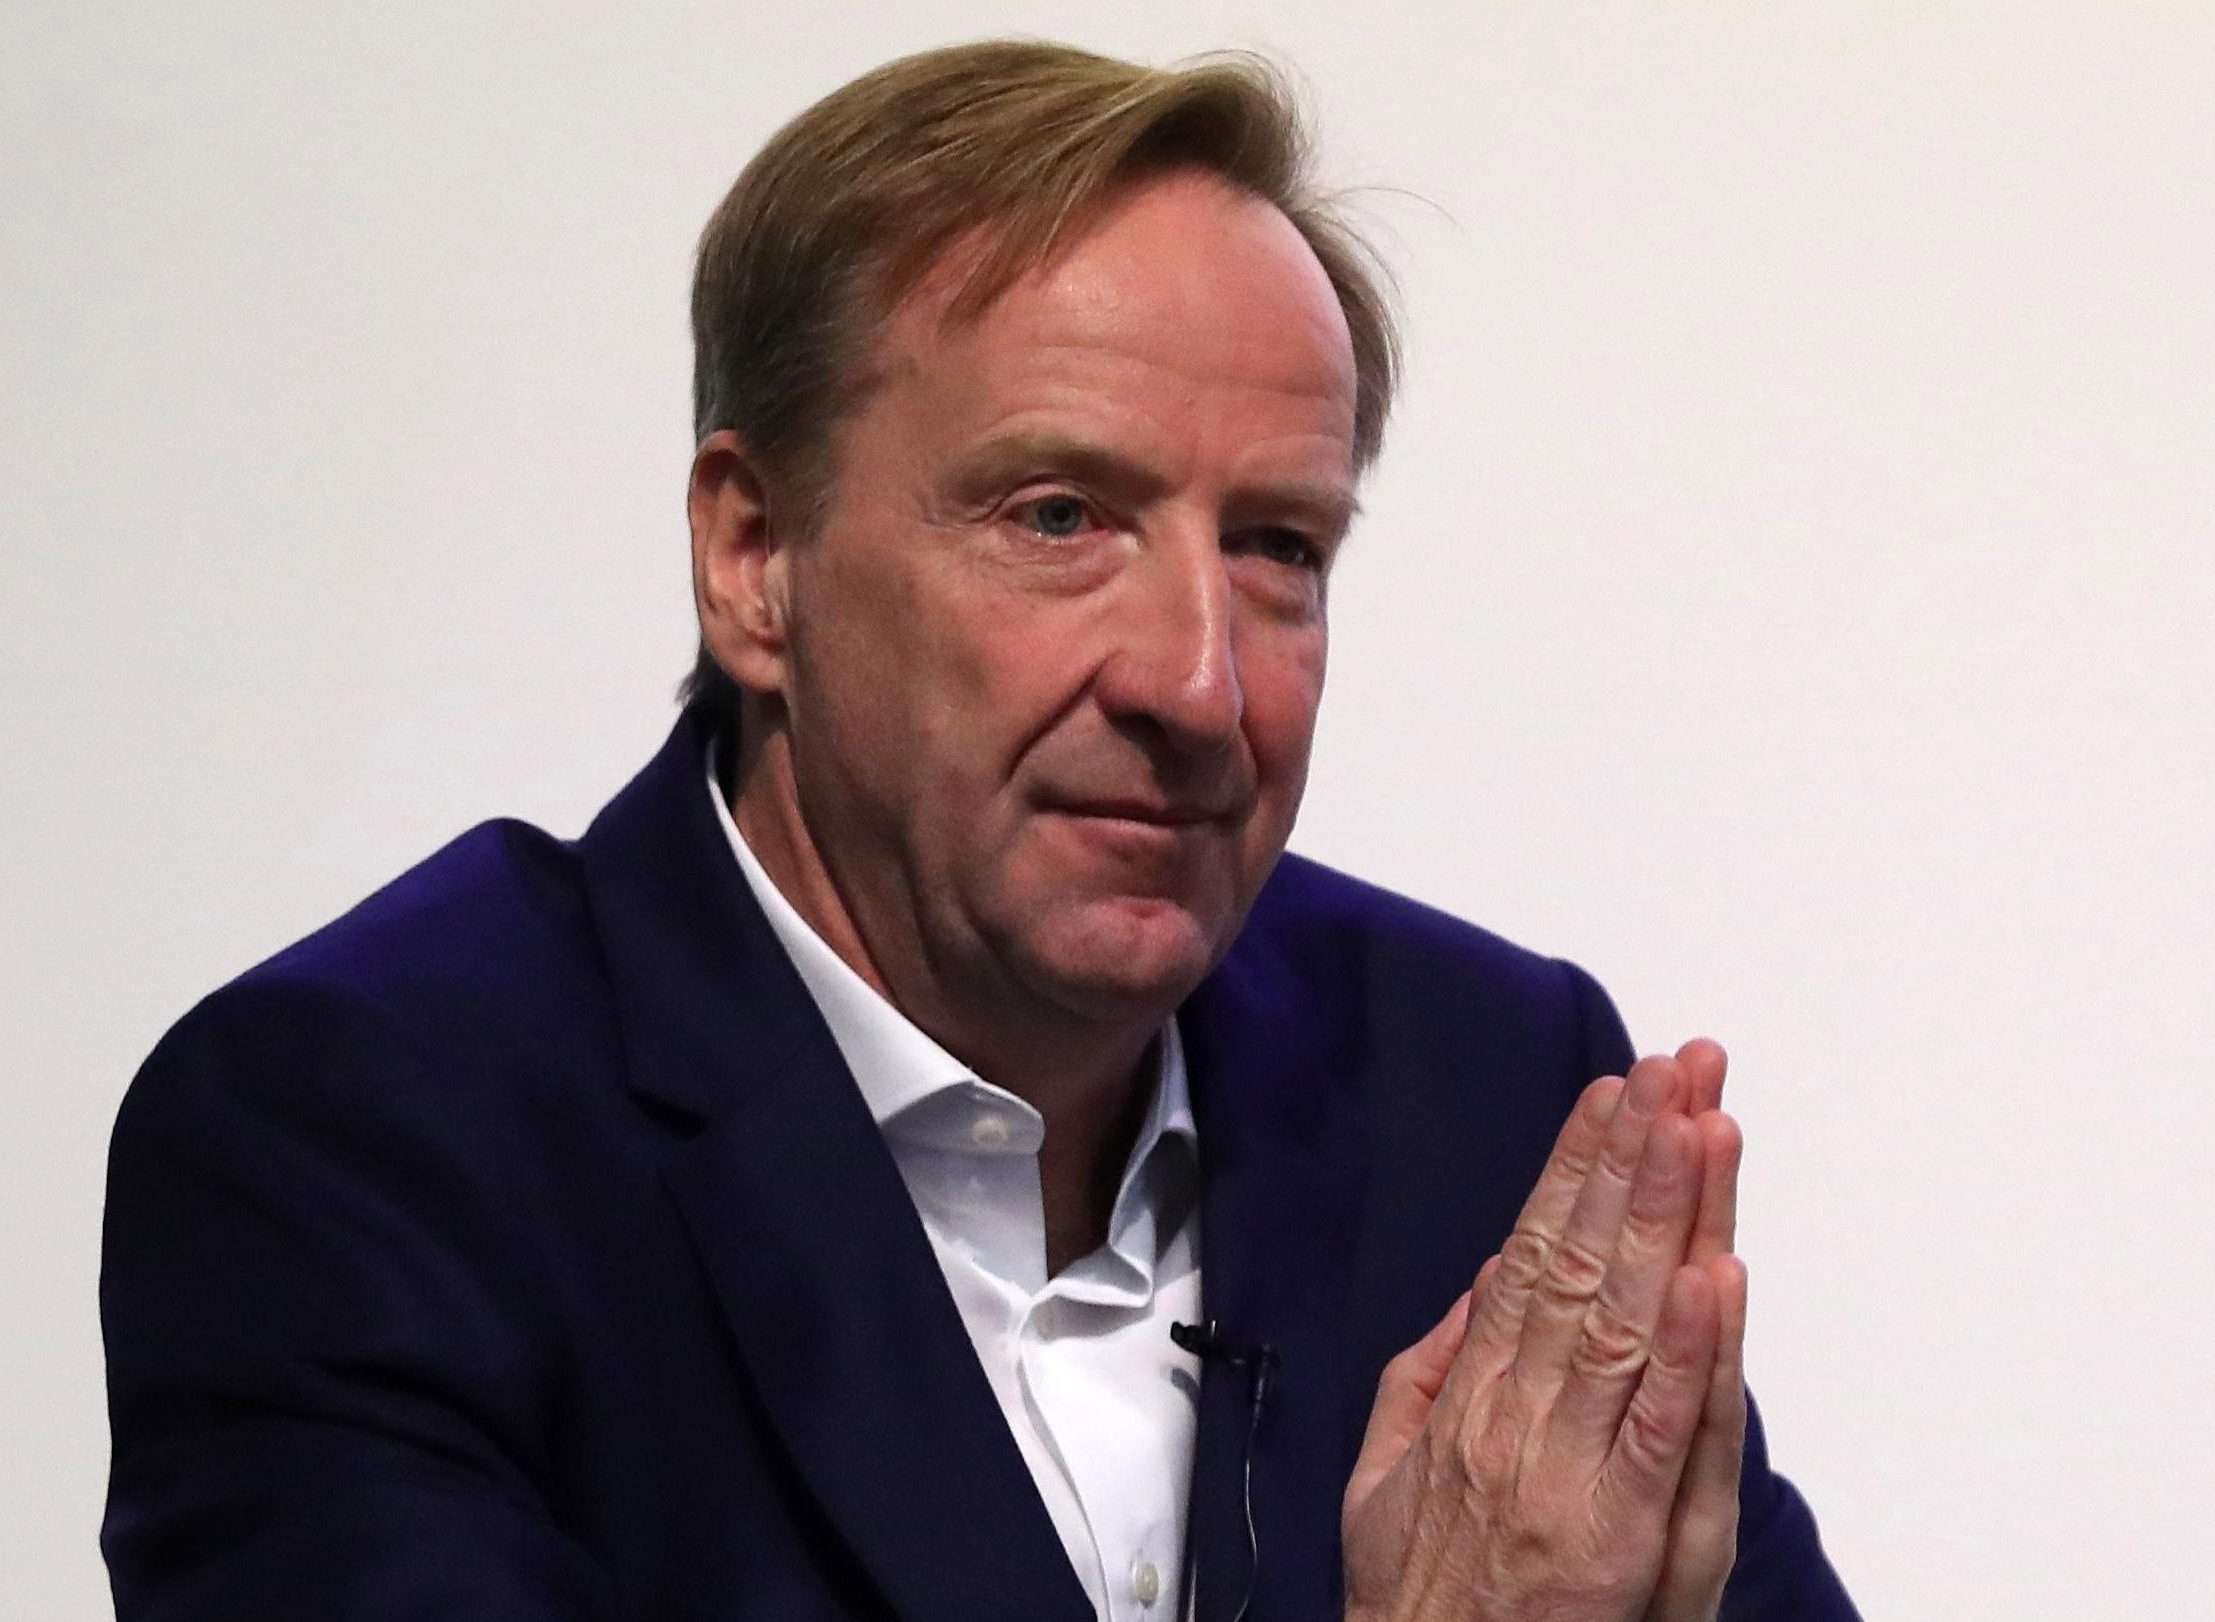 MI6 boss Alex Younger warns the UK must develop groundbreaking mobile technology or risk being at China's mercy